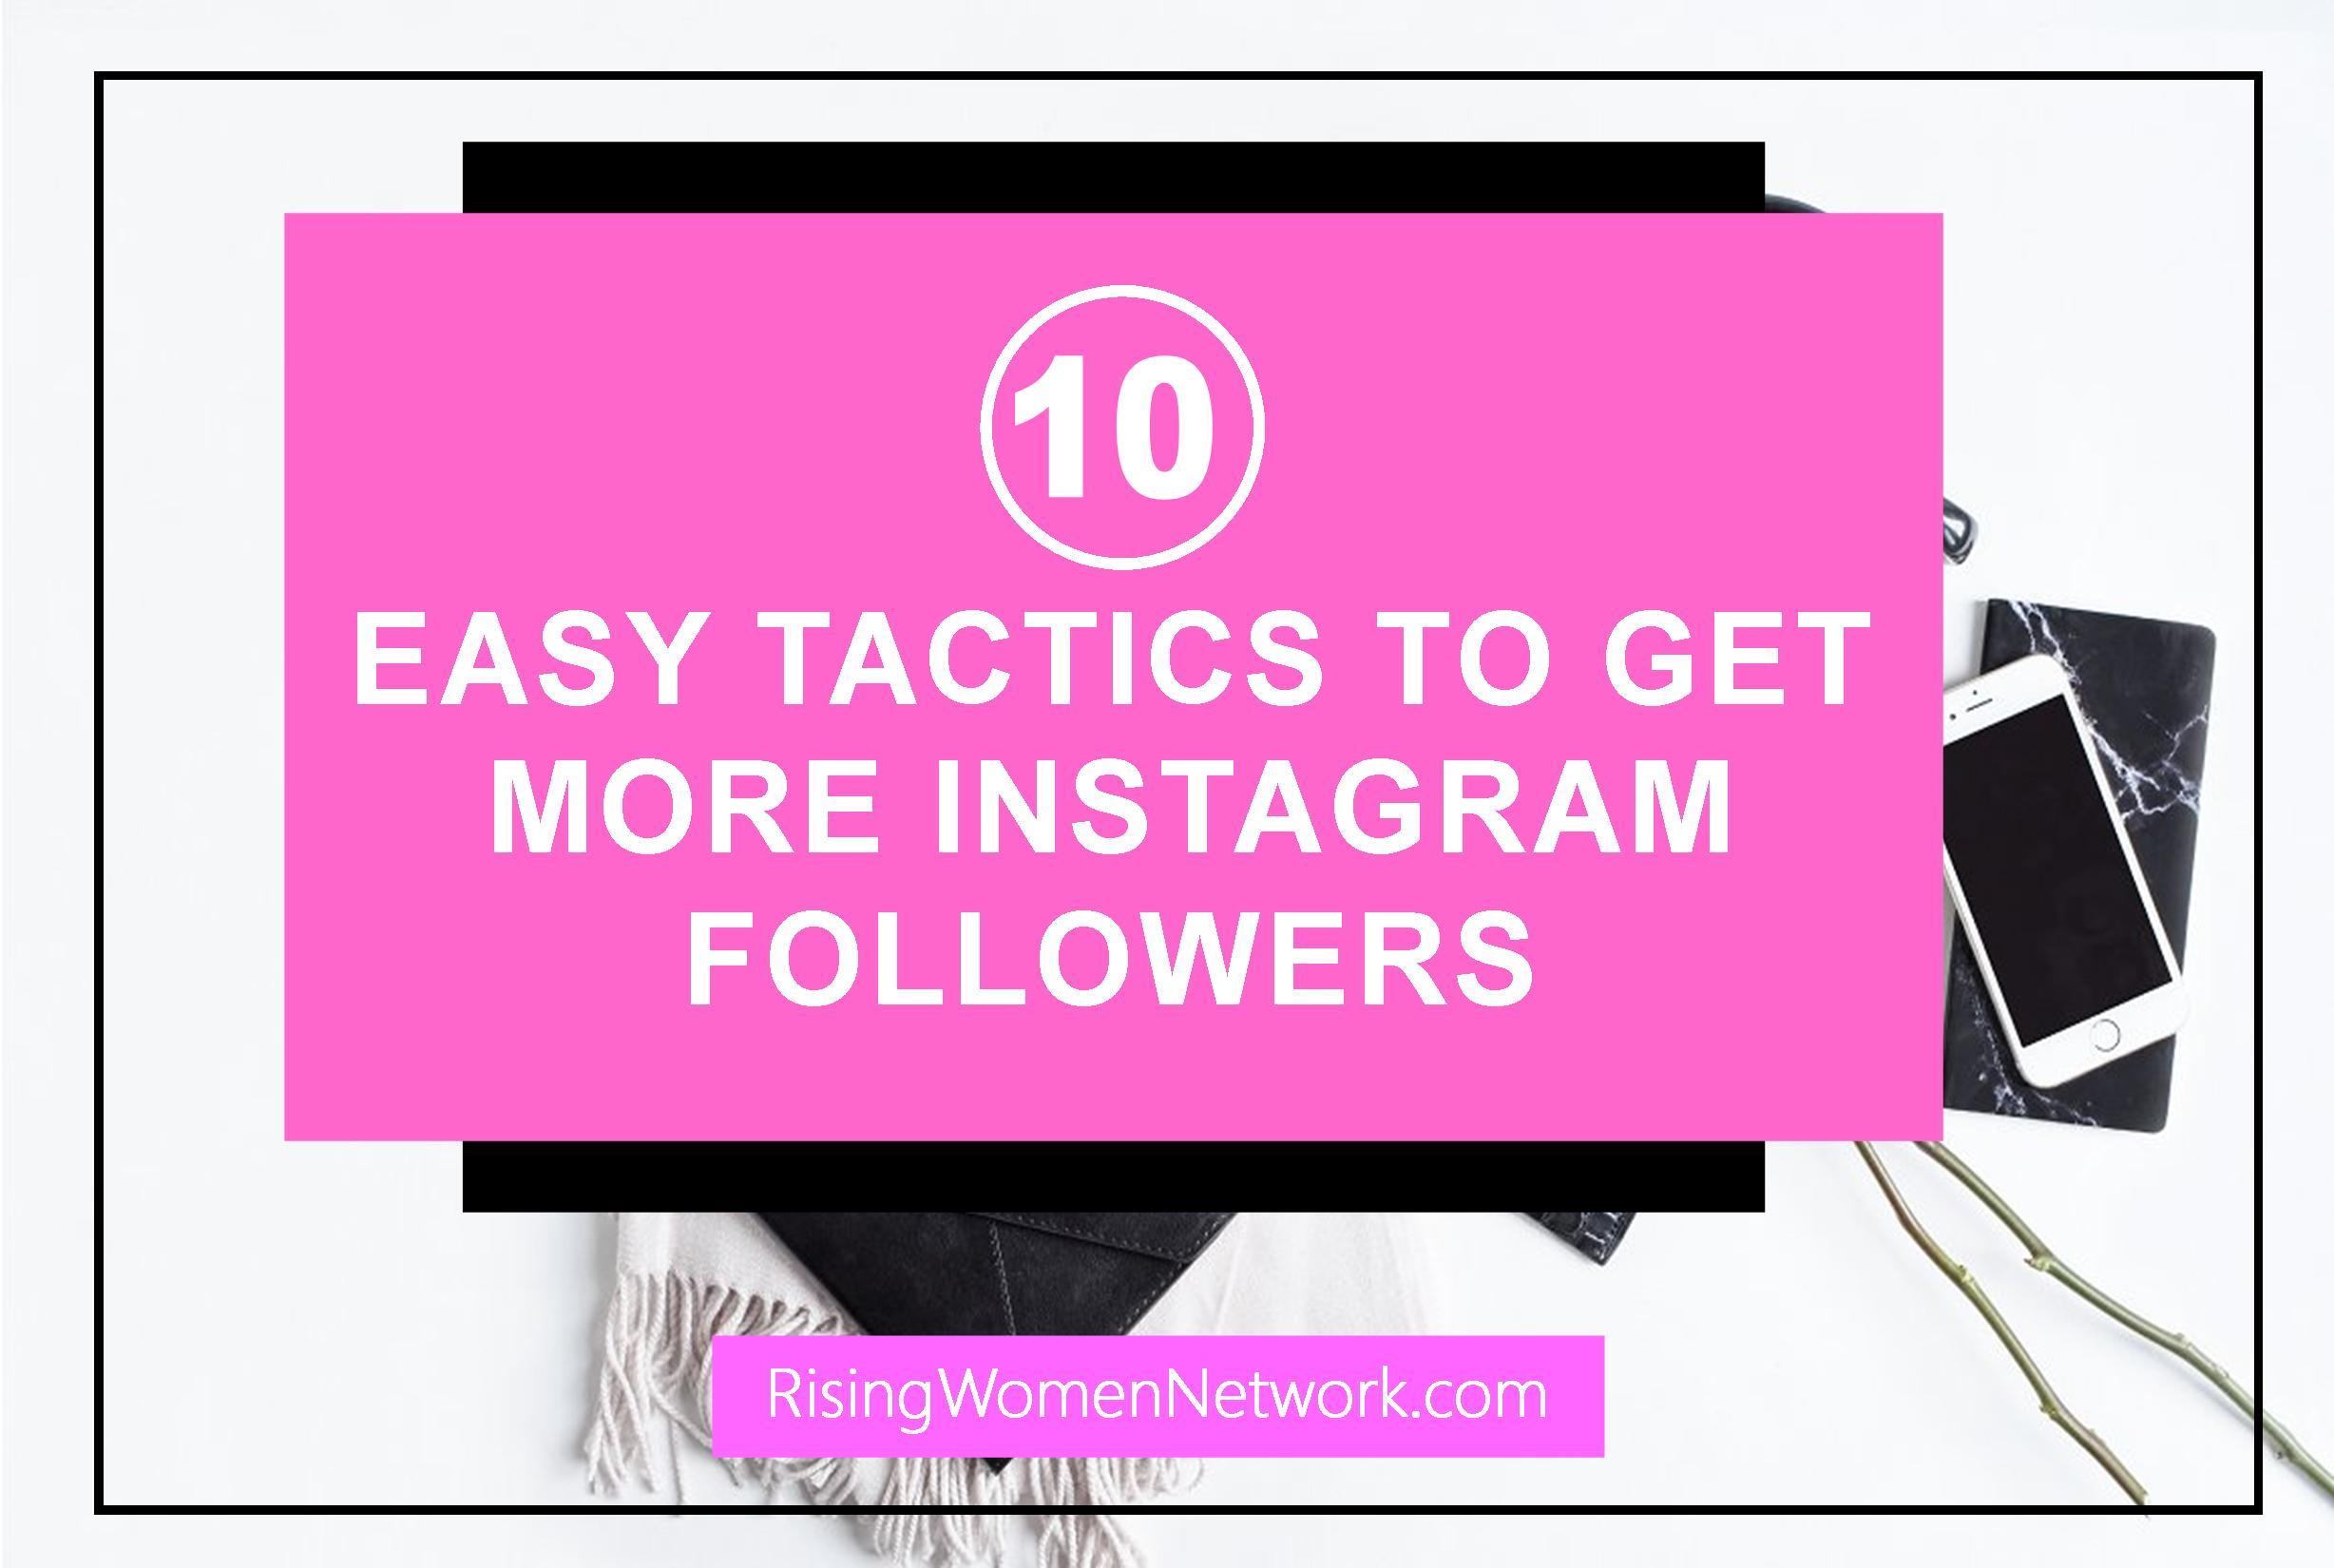 We want to help you increase your Instagram followers.There's no reason with hard work and these tools, you can't stand out amidst users on Instagram.